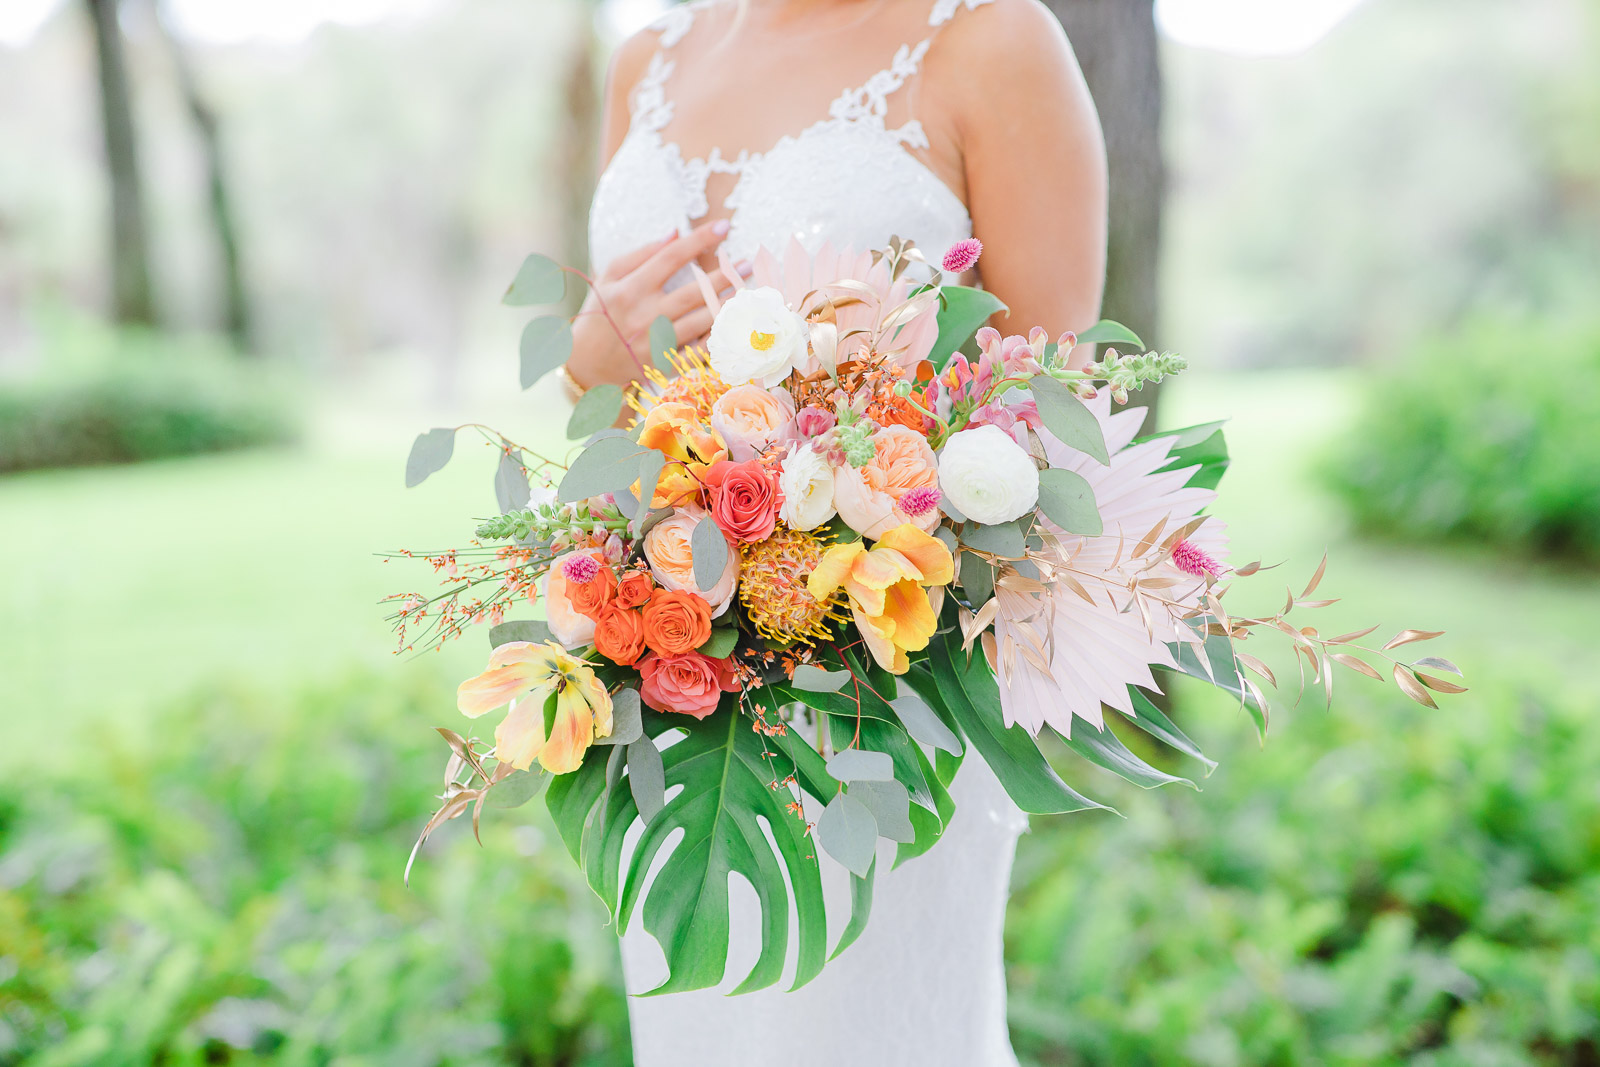 bride holding large citrus inspired wedding bouquet with tropical colors and flowers